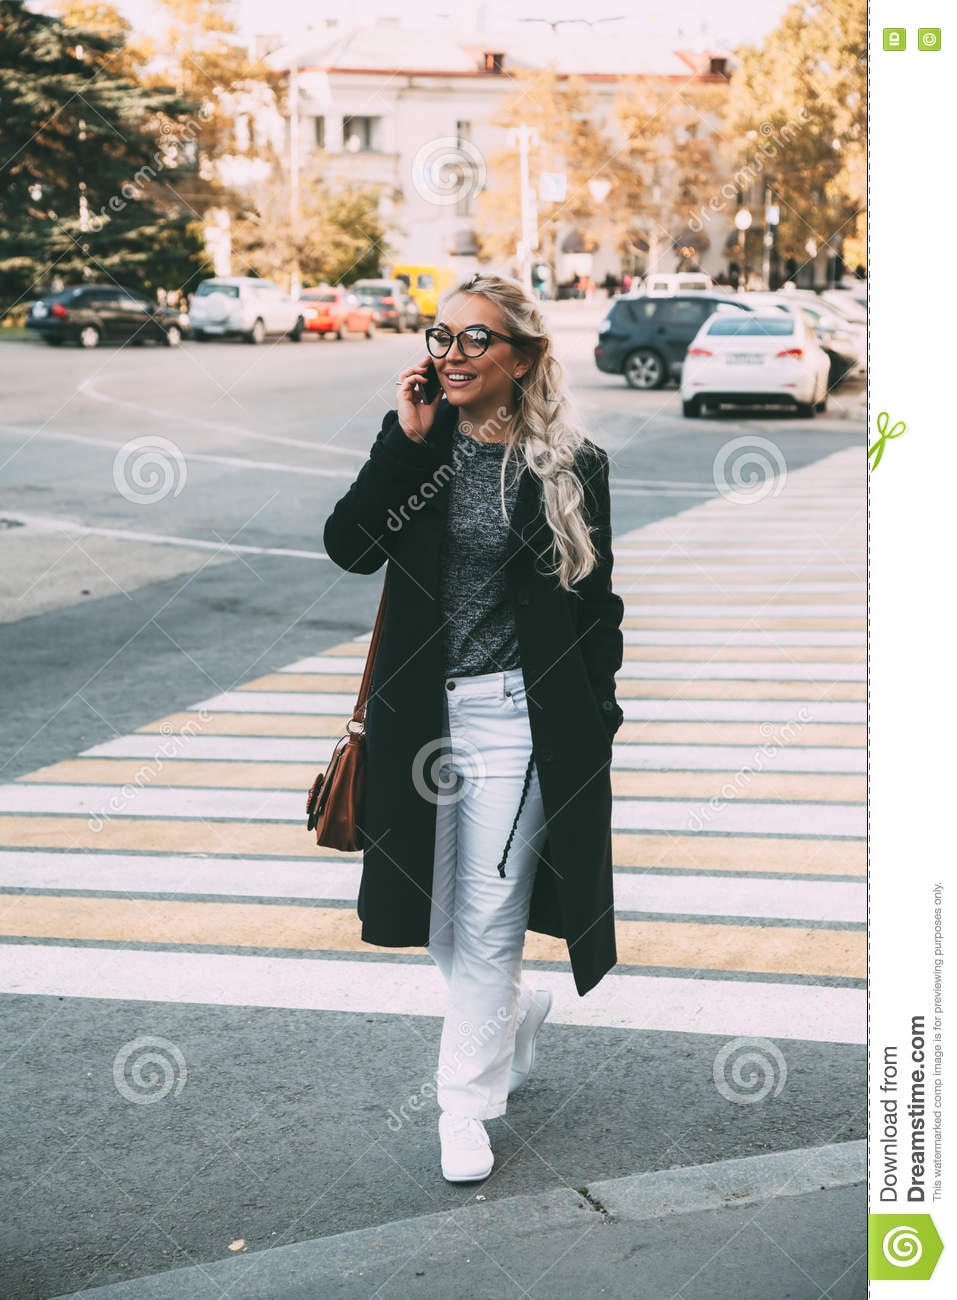 865f1c4f0505 ... hipster glasses walking on the city street and talking by phone on  crosswalk. Fall casual fashion, elegant everyday look. size model,  lifestyle photo.